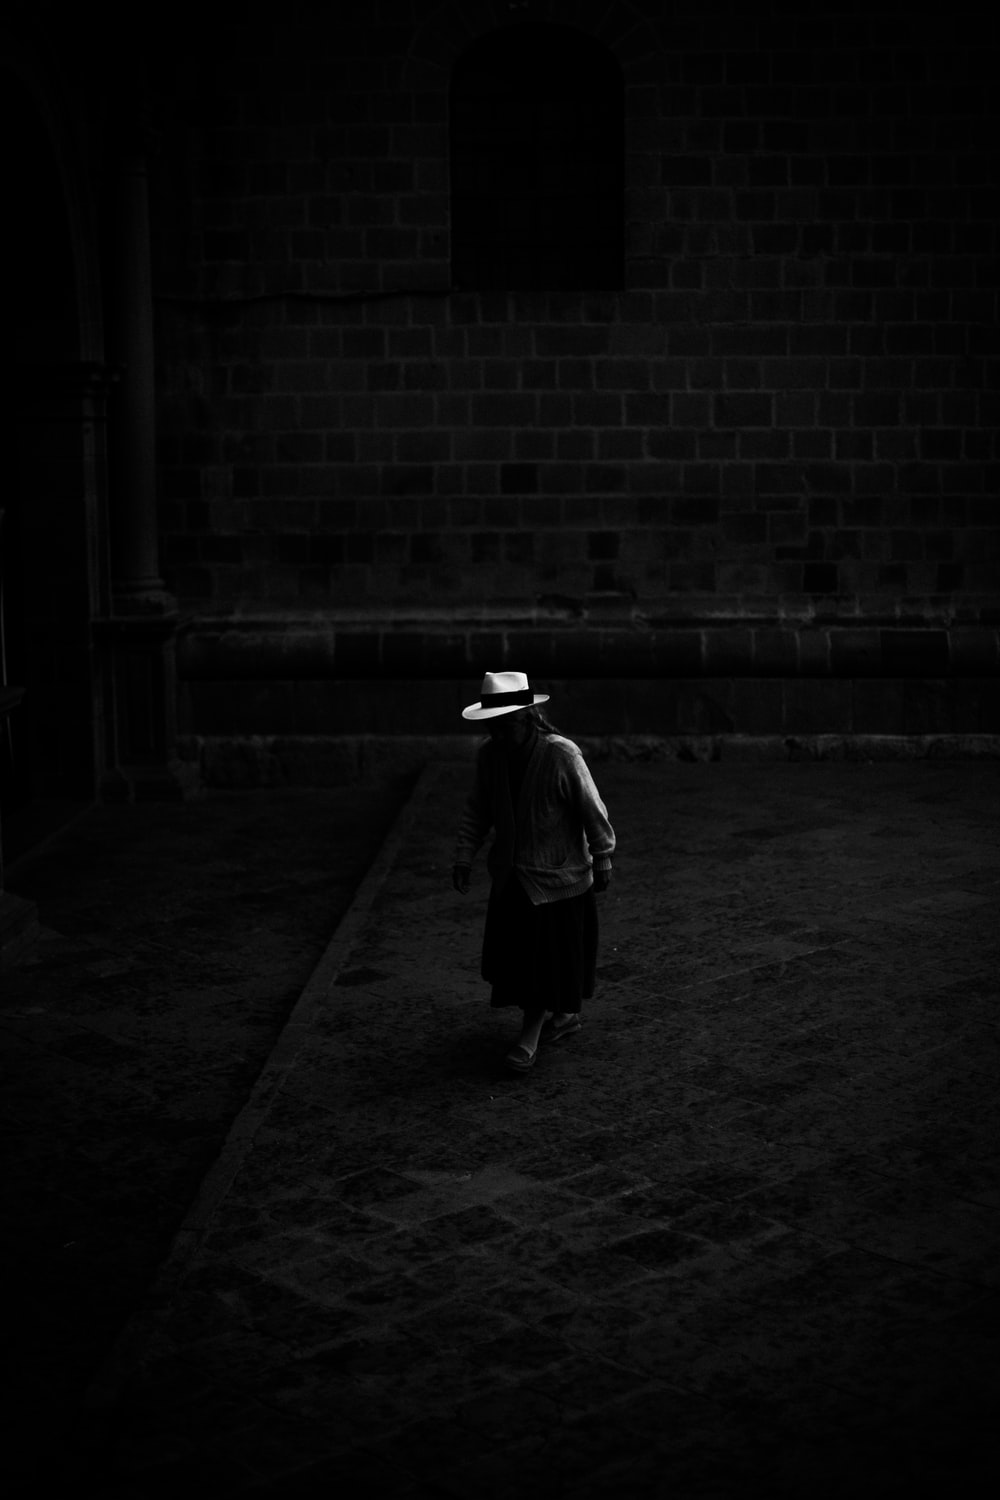 woman standing on the dark